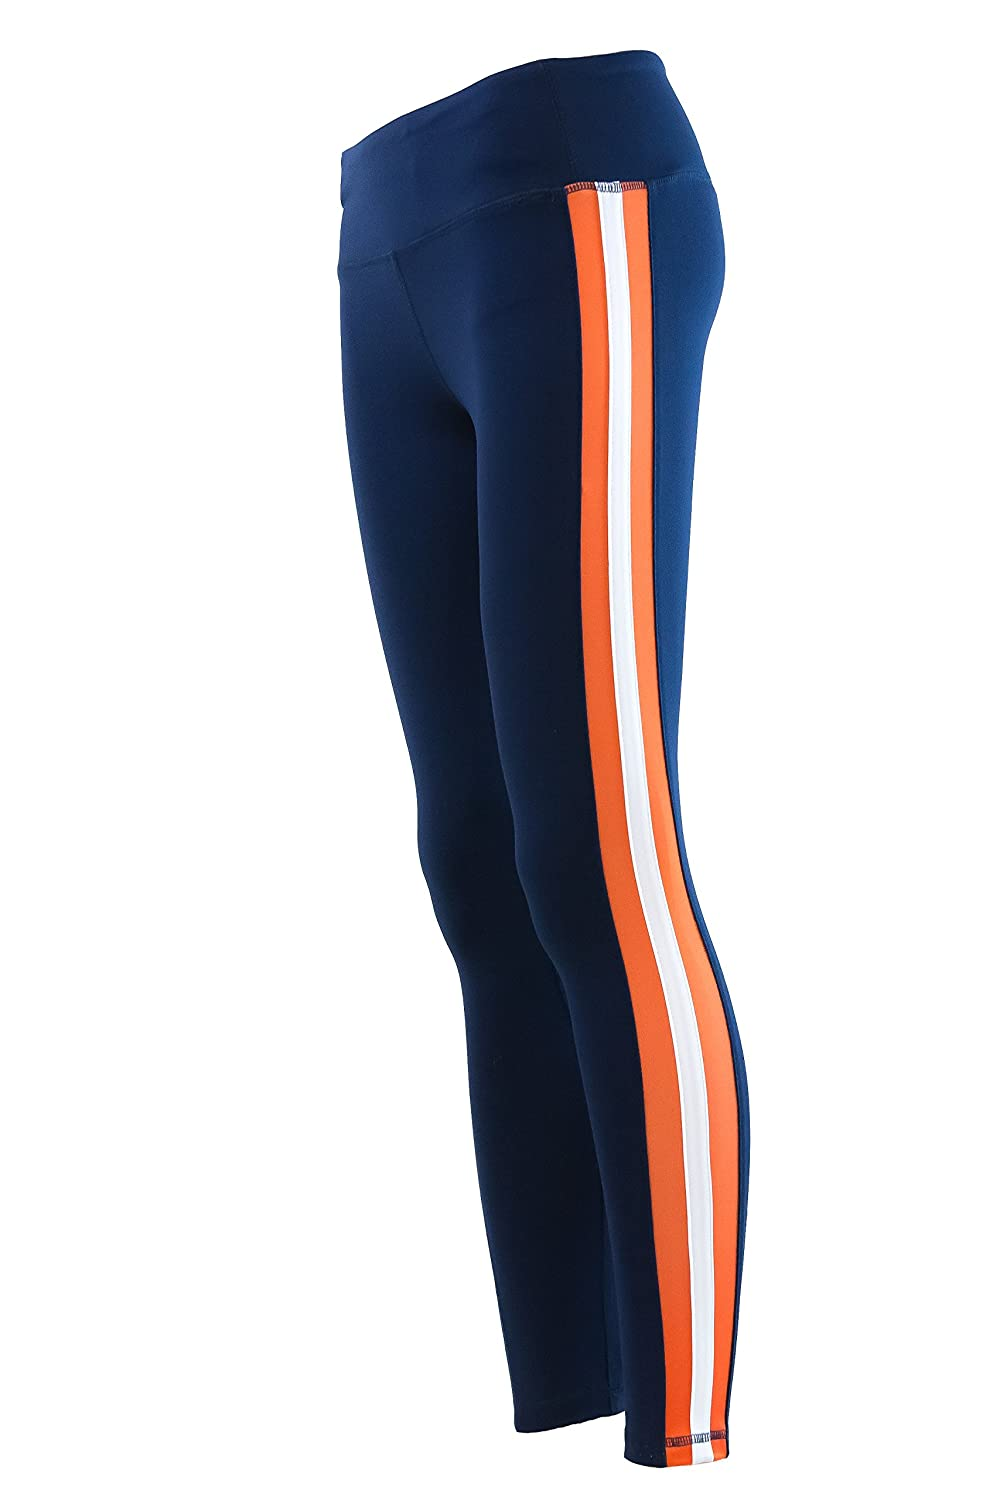 . Triple Threat Striped Yoga Pant Leggings Navy/Orange